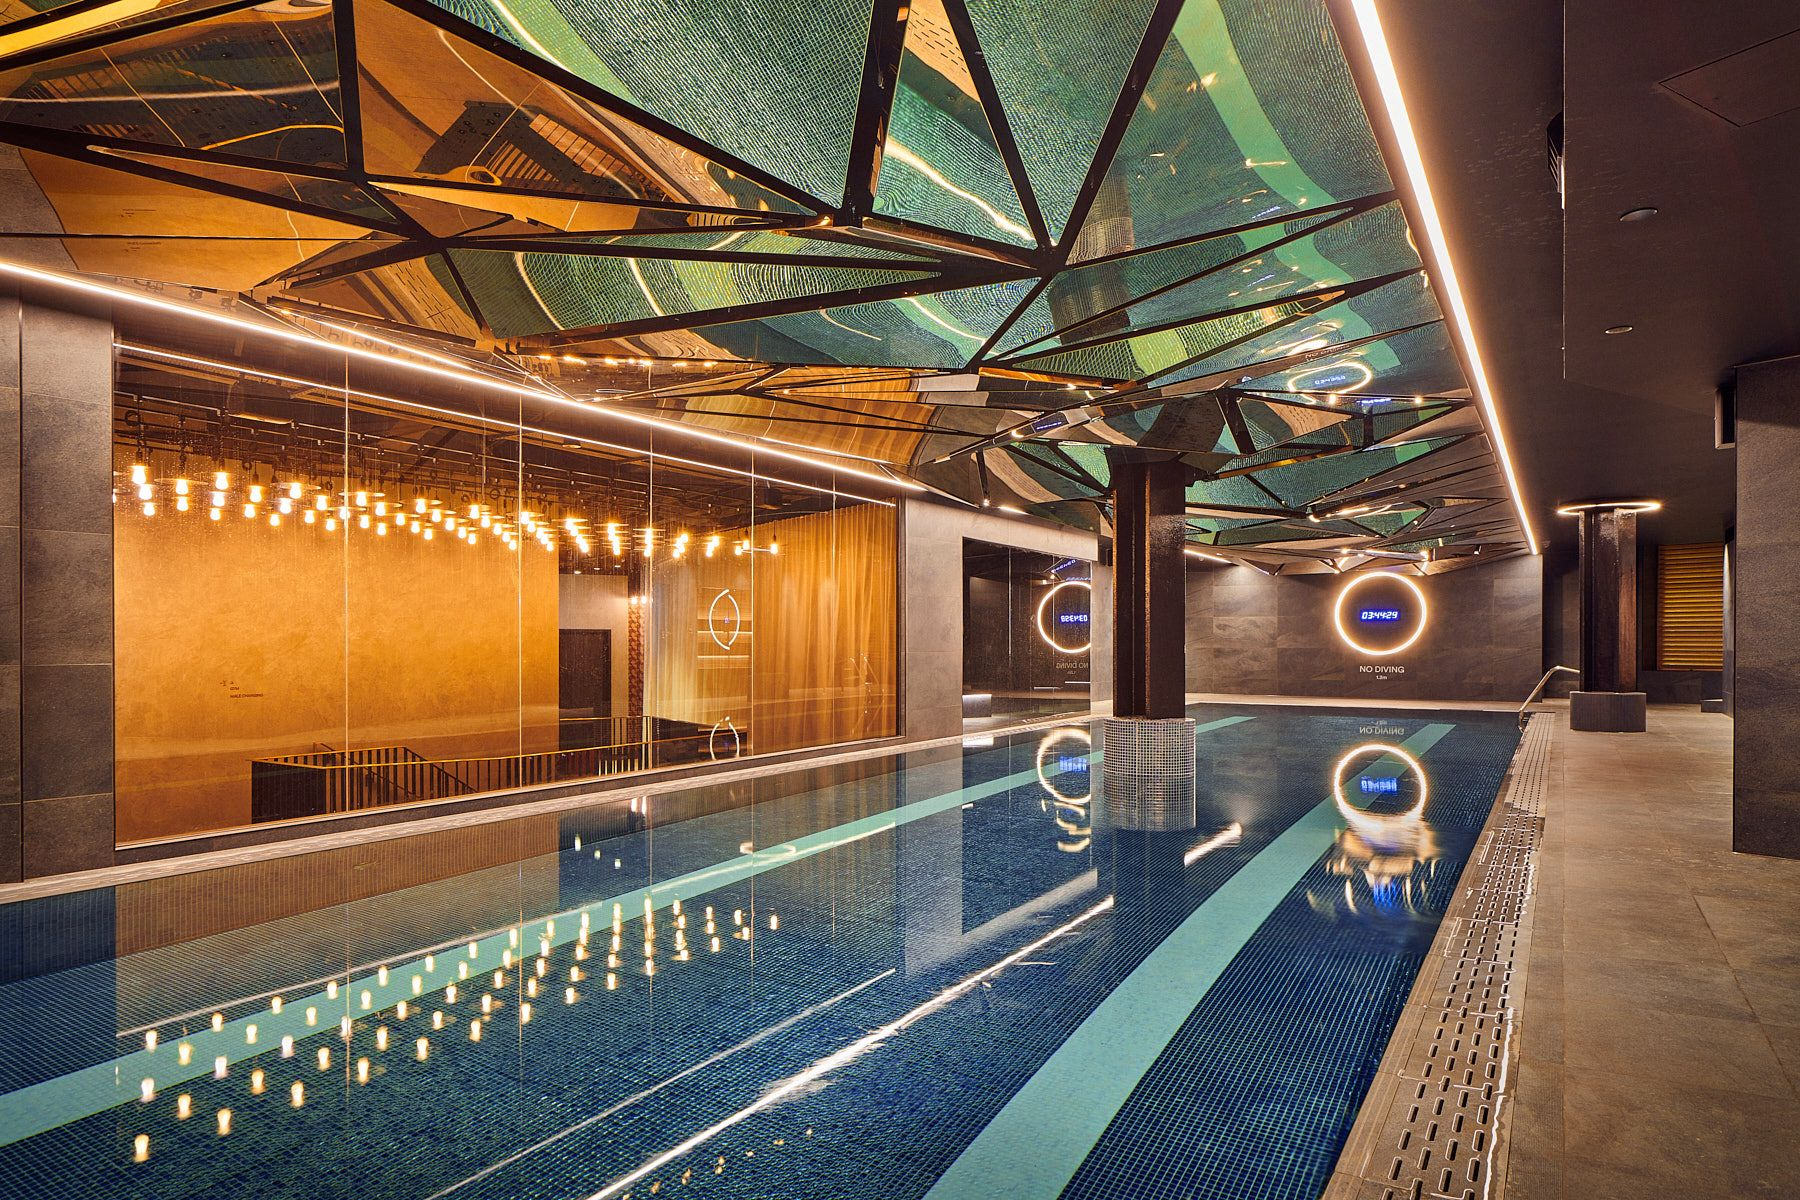 Third space city is the luxury gym the finance district has been